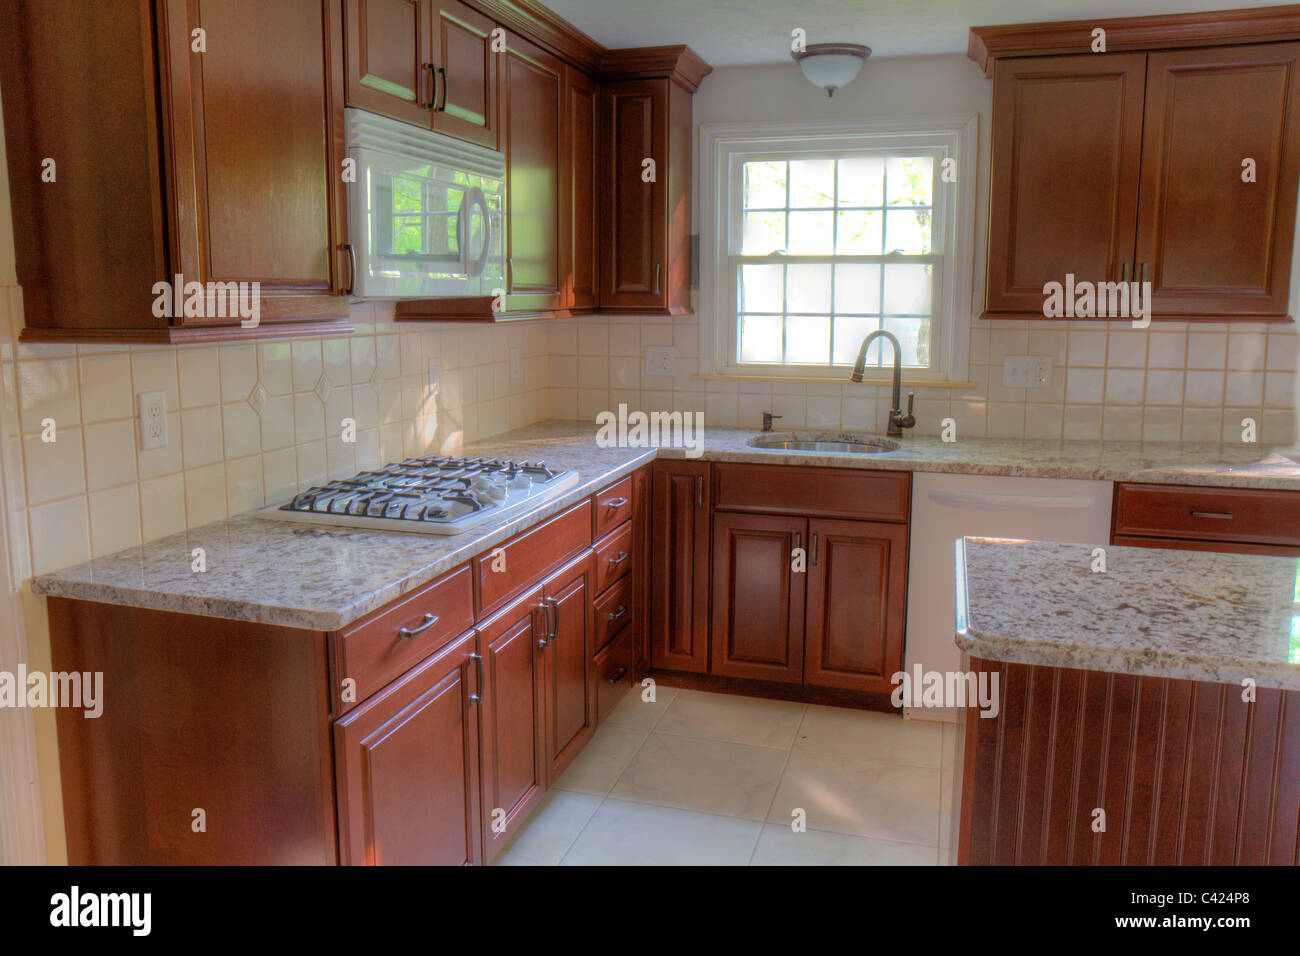 Images Of Kitchen Renovations With Granite Countertops on kitchens with double sinks, kitchens with back splash, kitchens with open beams, kitchens with pecan cabinets, kitchens with 2 stoves, kitchens with bianco romano granite, kitchens with wet bar, kitchens with flat top stoves, kitchens with spanish tile, kitchens with eat in kitchen, kitchens with uba tuba granite, kitchens with silestone, kitchens with undercabinet lighting, kitchens with cedar cabinets, kitchens with unfinished cabinets, kitchens with white cabinets, kitchens with flooring, kitchens with gas range, kitchens with jenn air appliances, maple kitchen cabinets with black countertops,